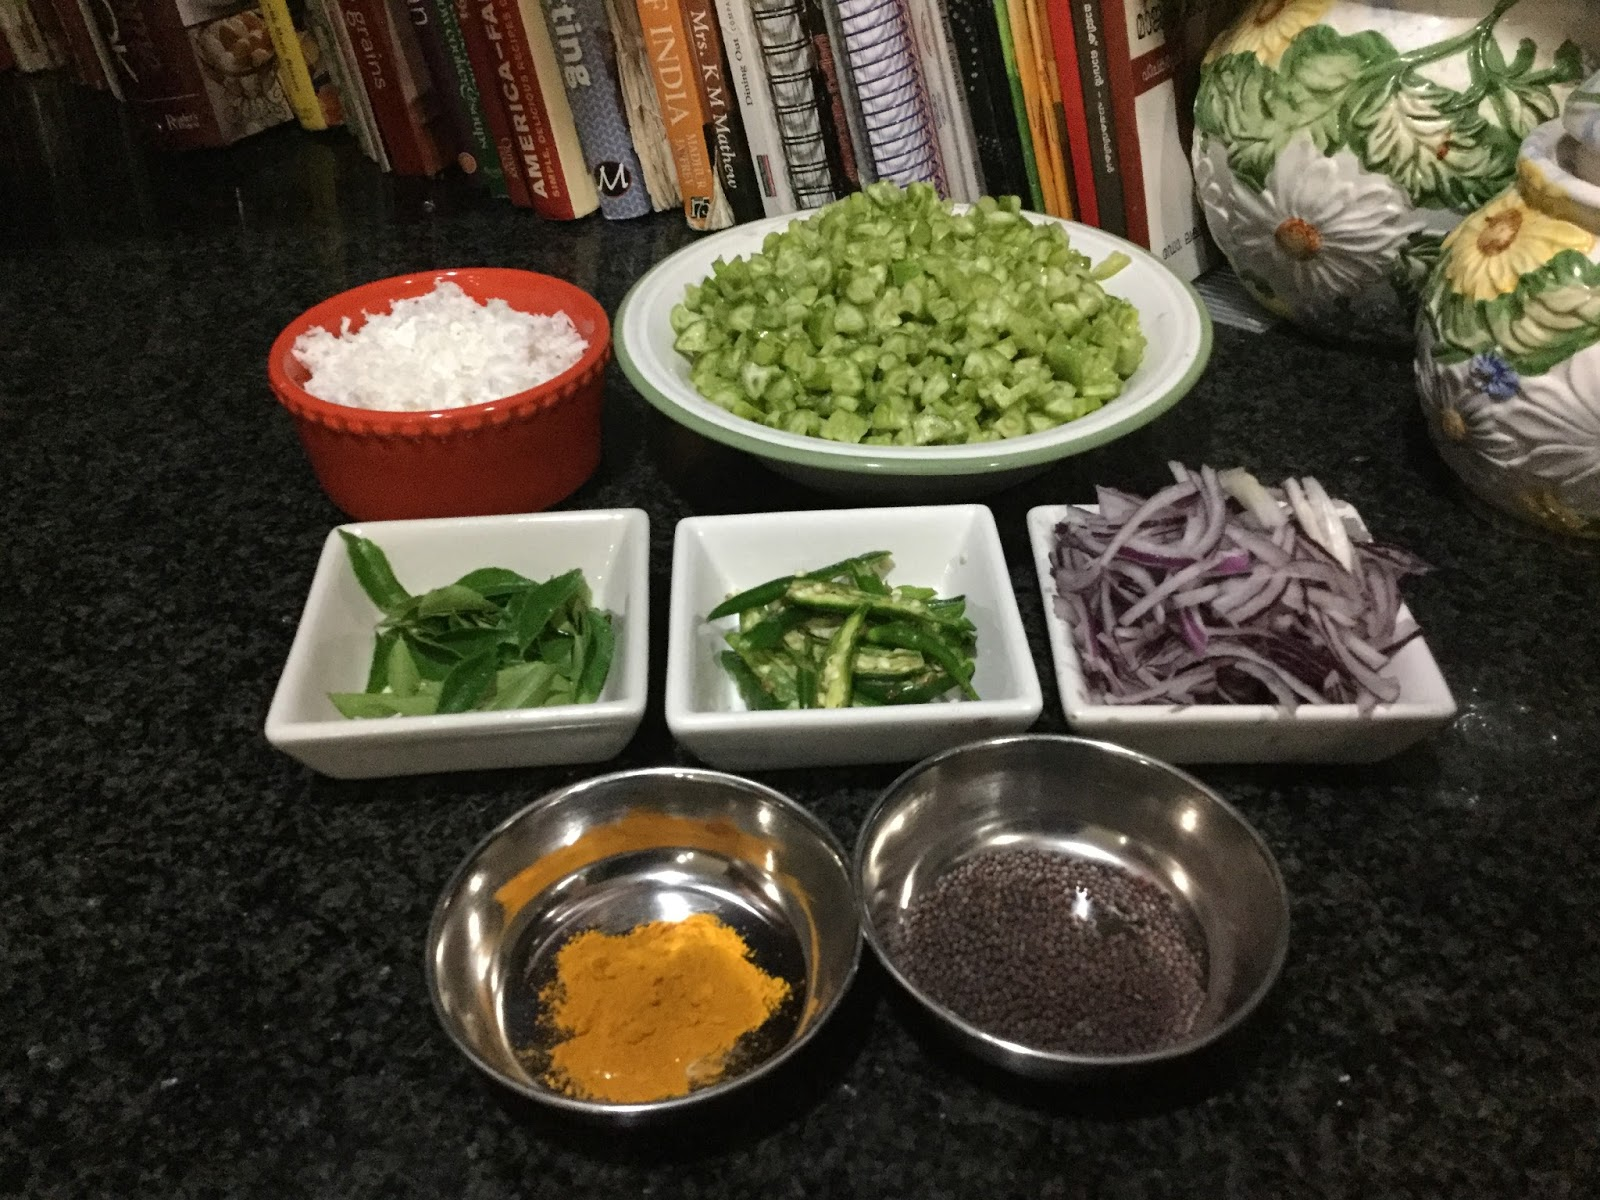 Cooking at Home: Kovakka Thoran ( Ivy Gourd stir fry with coconut)